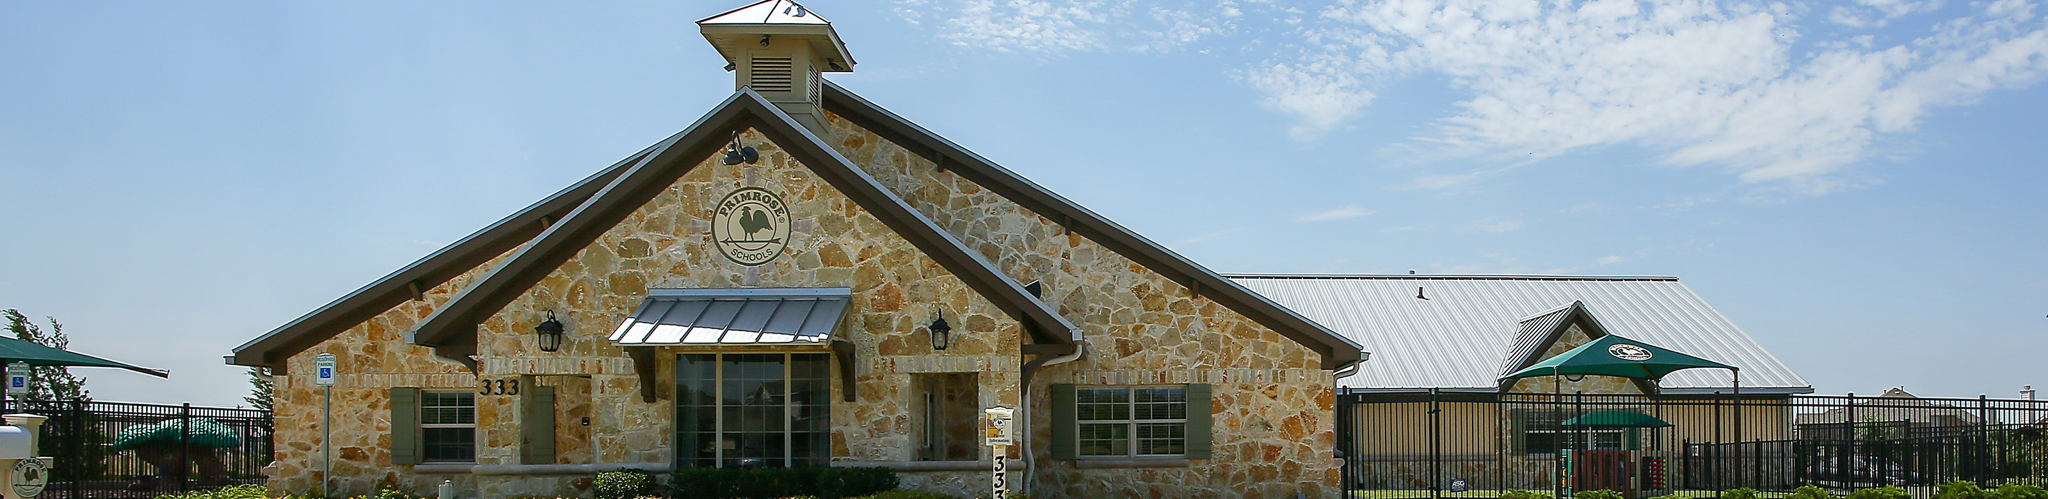 Exterior of a Primrose School of Frisco West